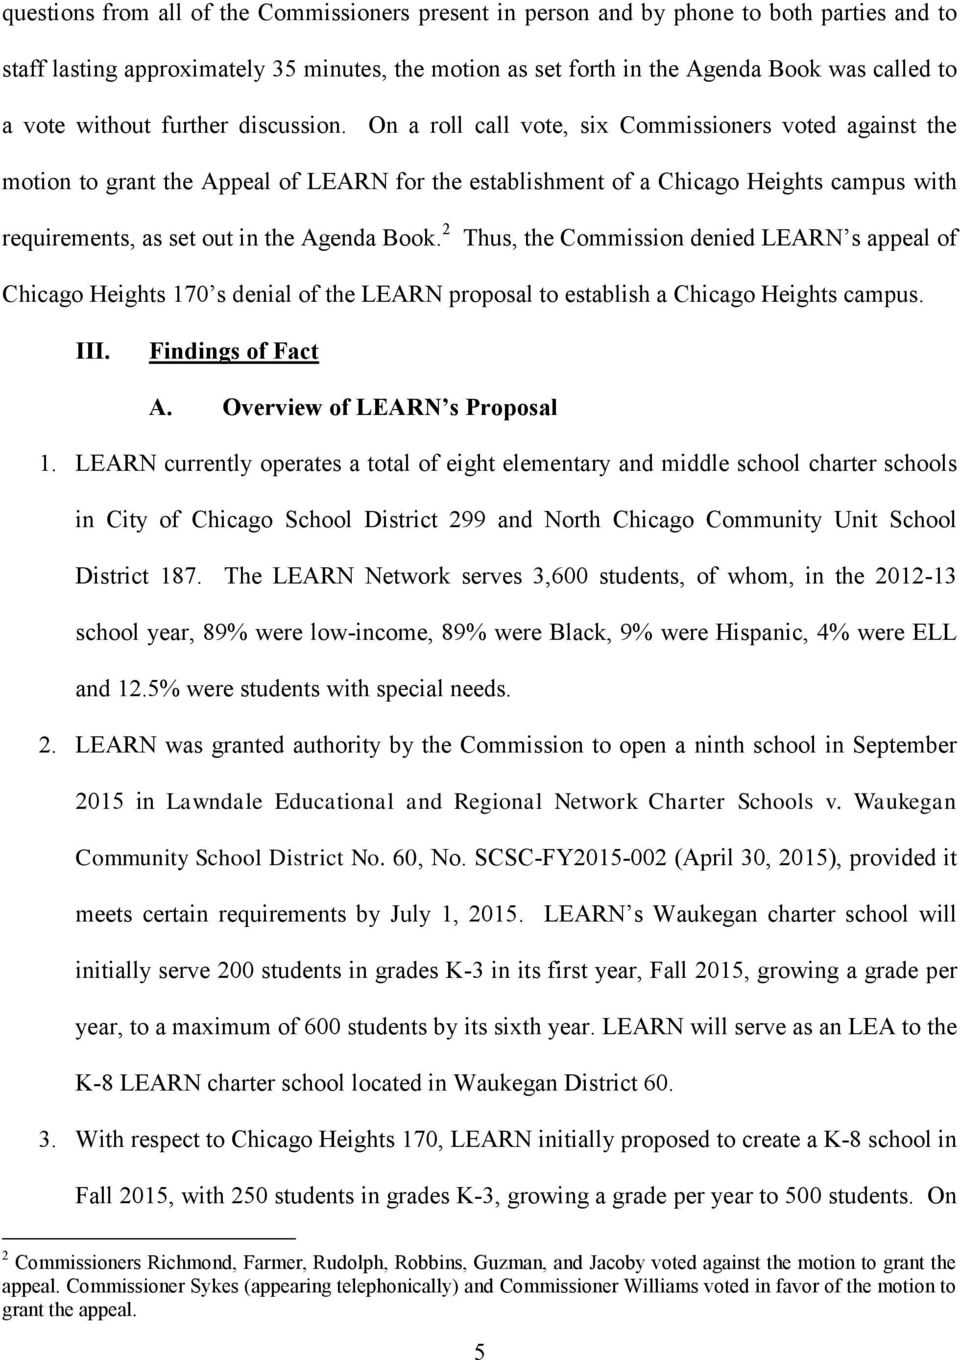 On a roll call vote, six Commissioners voted against the motion to grant the Appeal of LEARN for the establishment of a Chicago Heights campus with requirements, as set out in the Agenda Book.